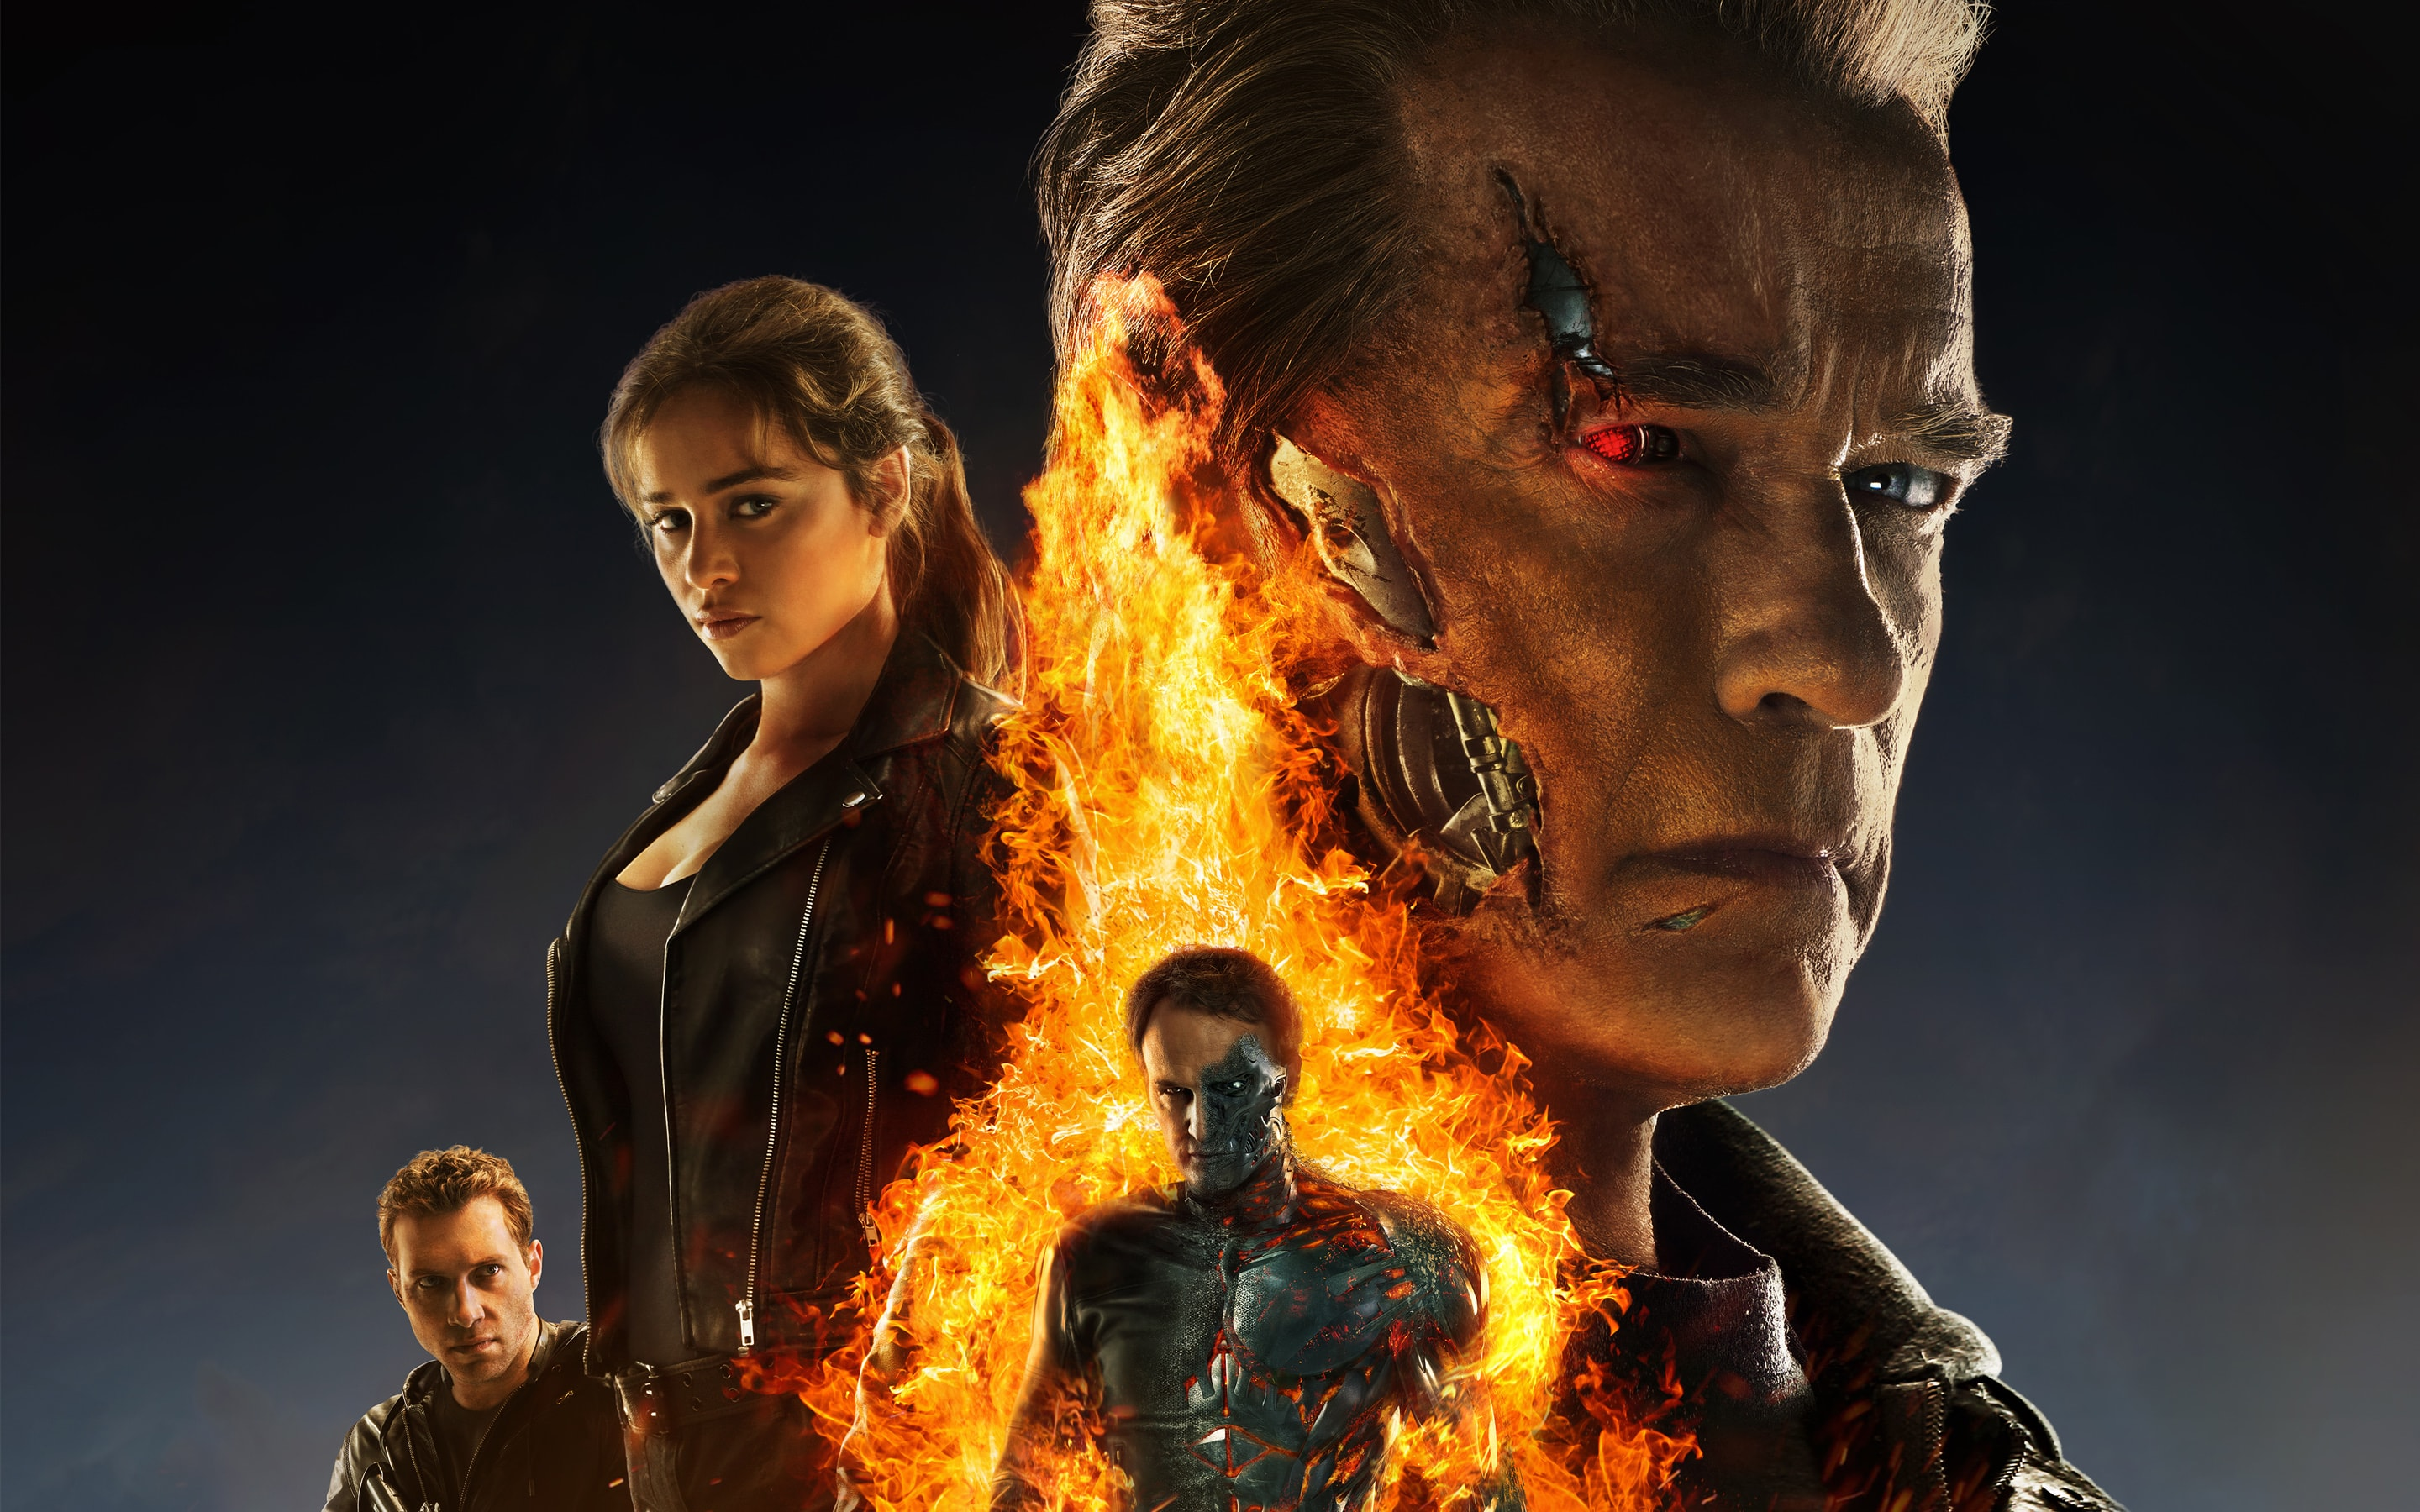 Terminator: Genisys Backgrounds